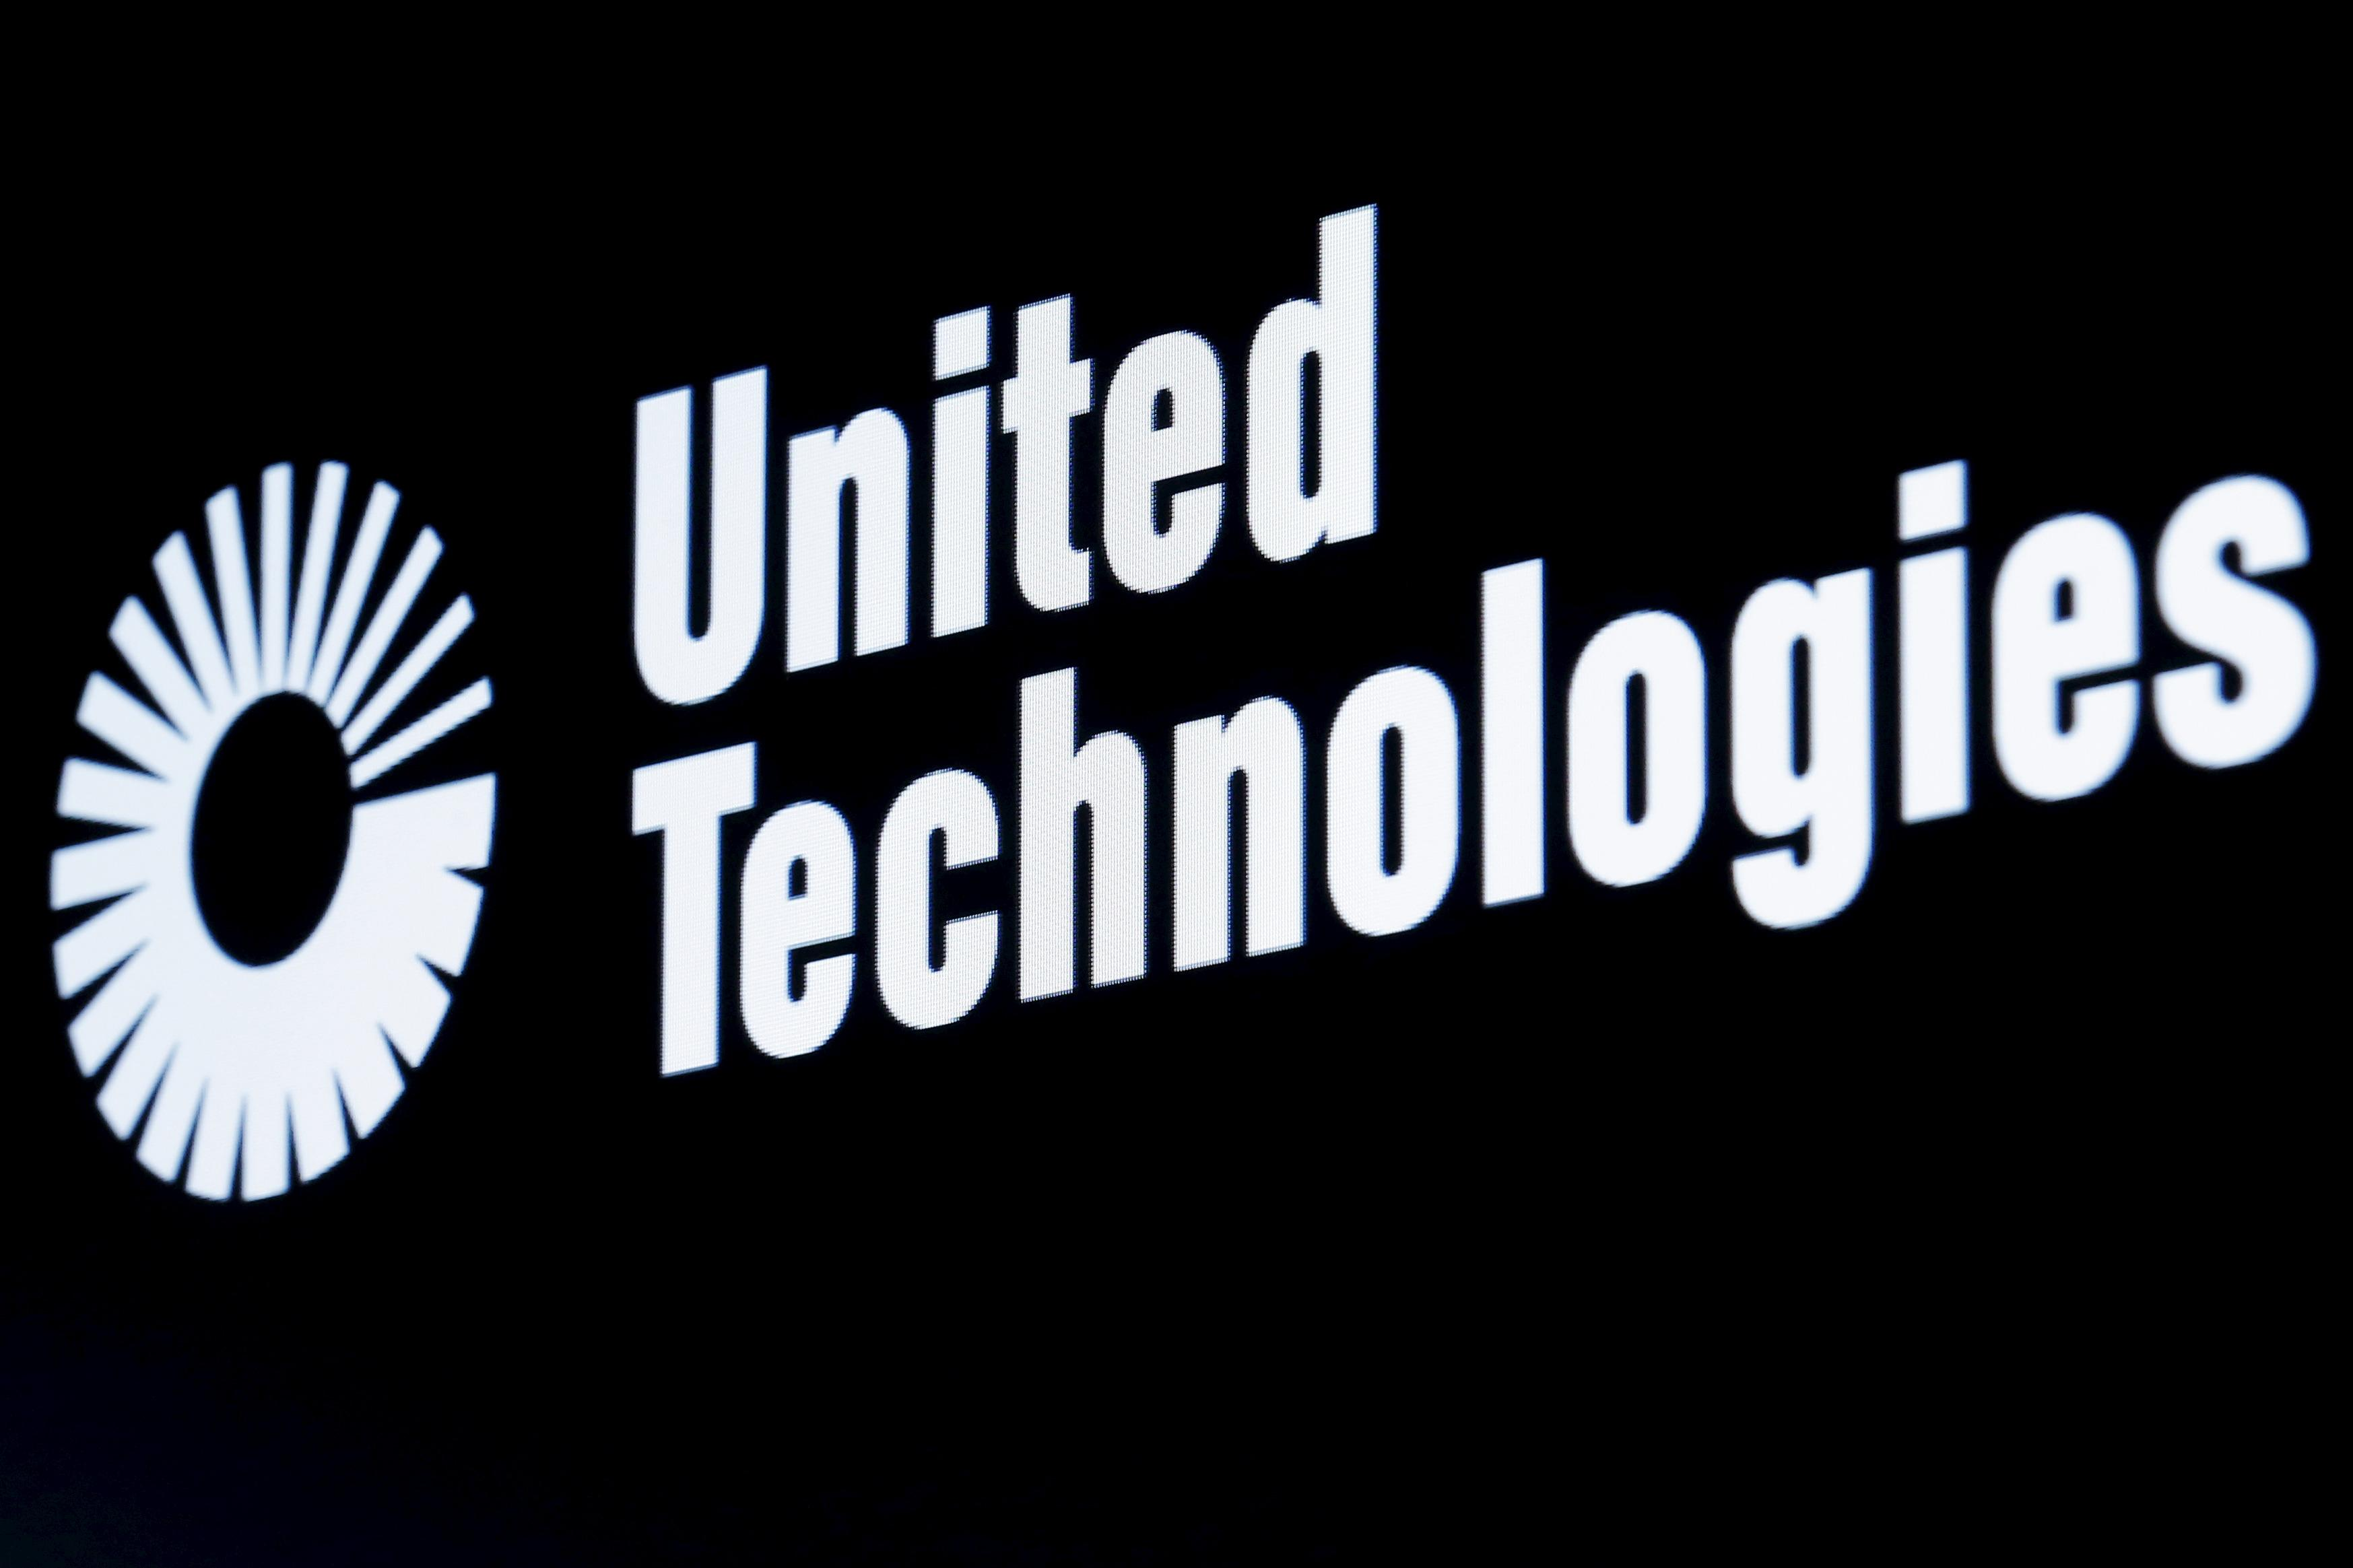 United Technologies nears deal to merge aerospace unit with